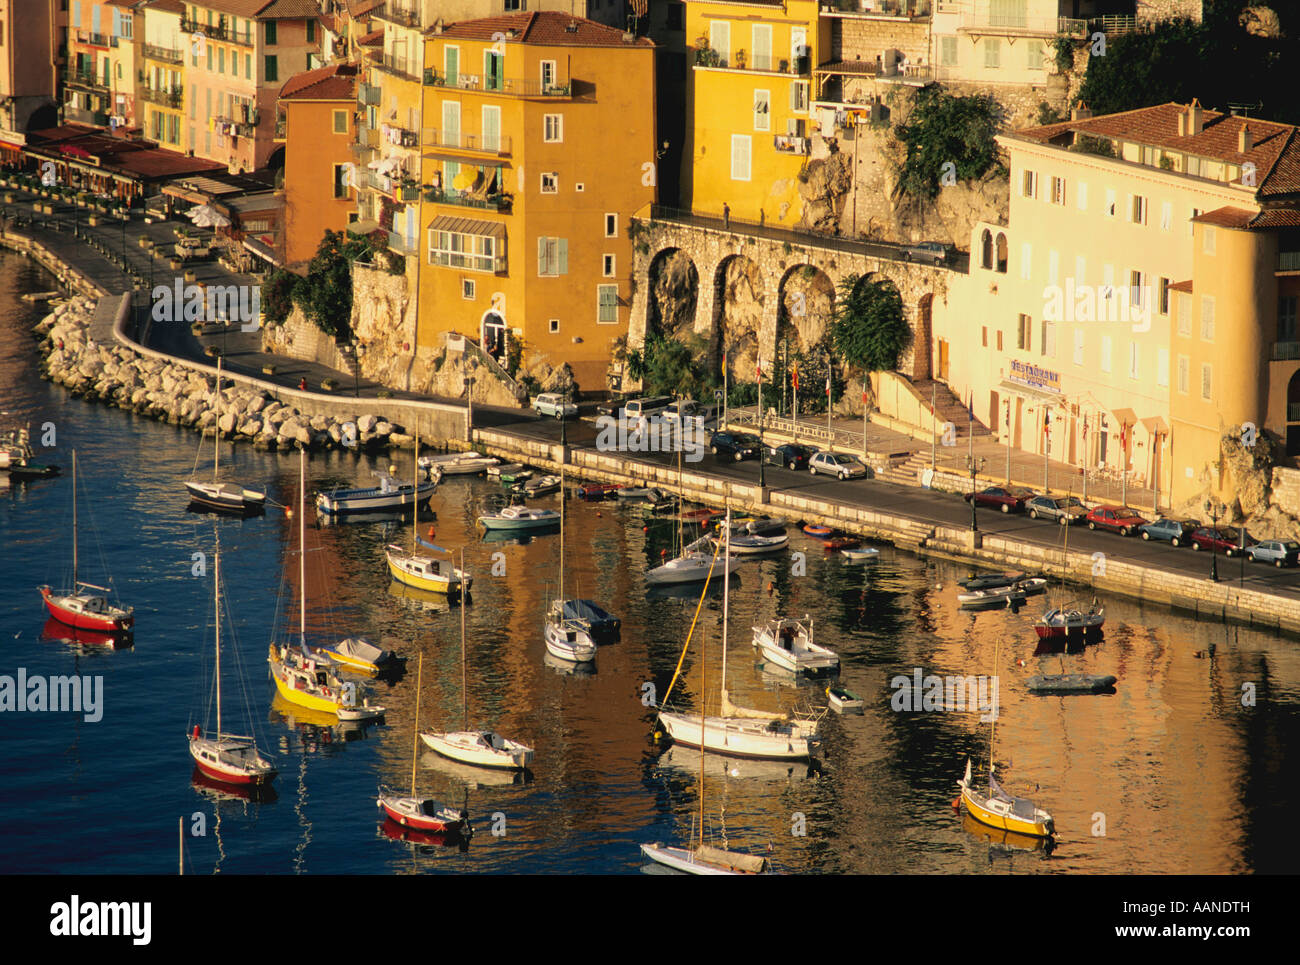 Villefranche sur Mer, Cote d'Azur, Provence, French Riviera, South of France at dusk - Stock Image